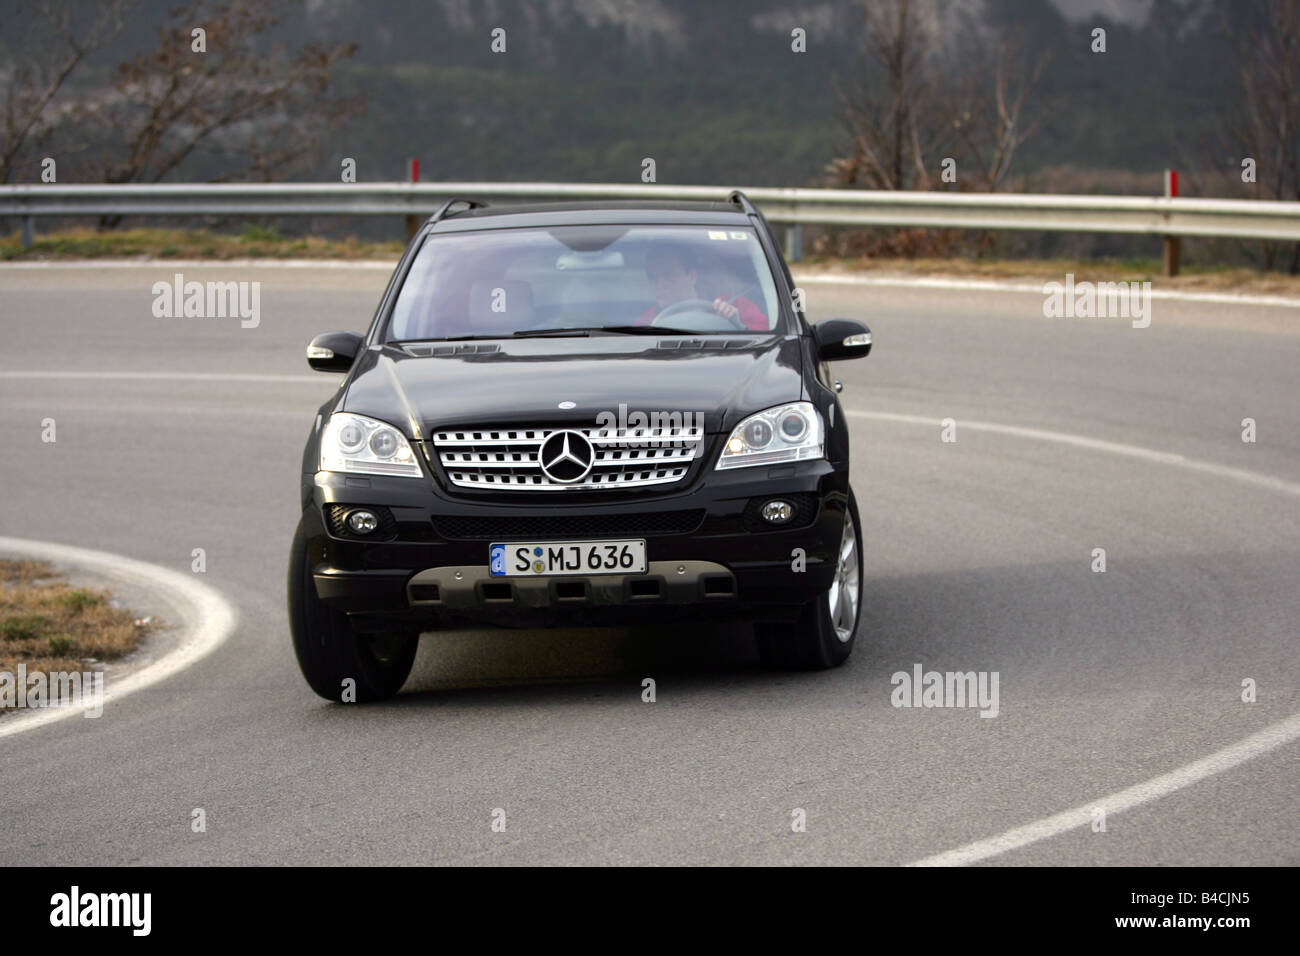 mercedes ml 320 cdi model year 2005 black driving. Black Bedroom Furniture Sets. Home Design Ideas